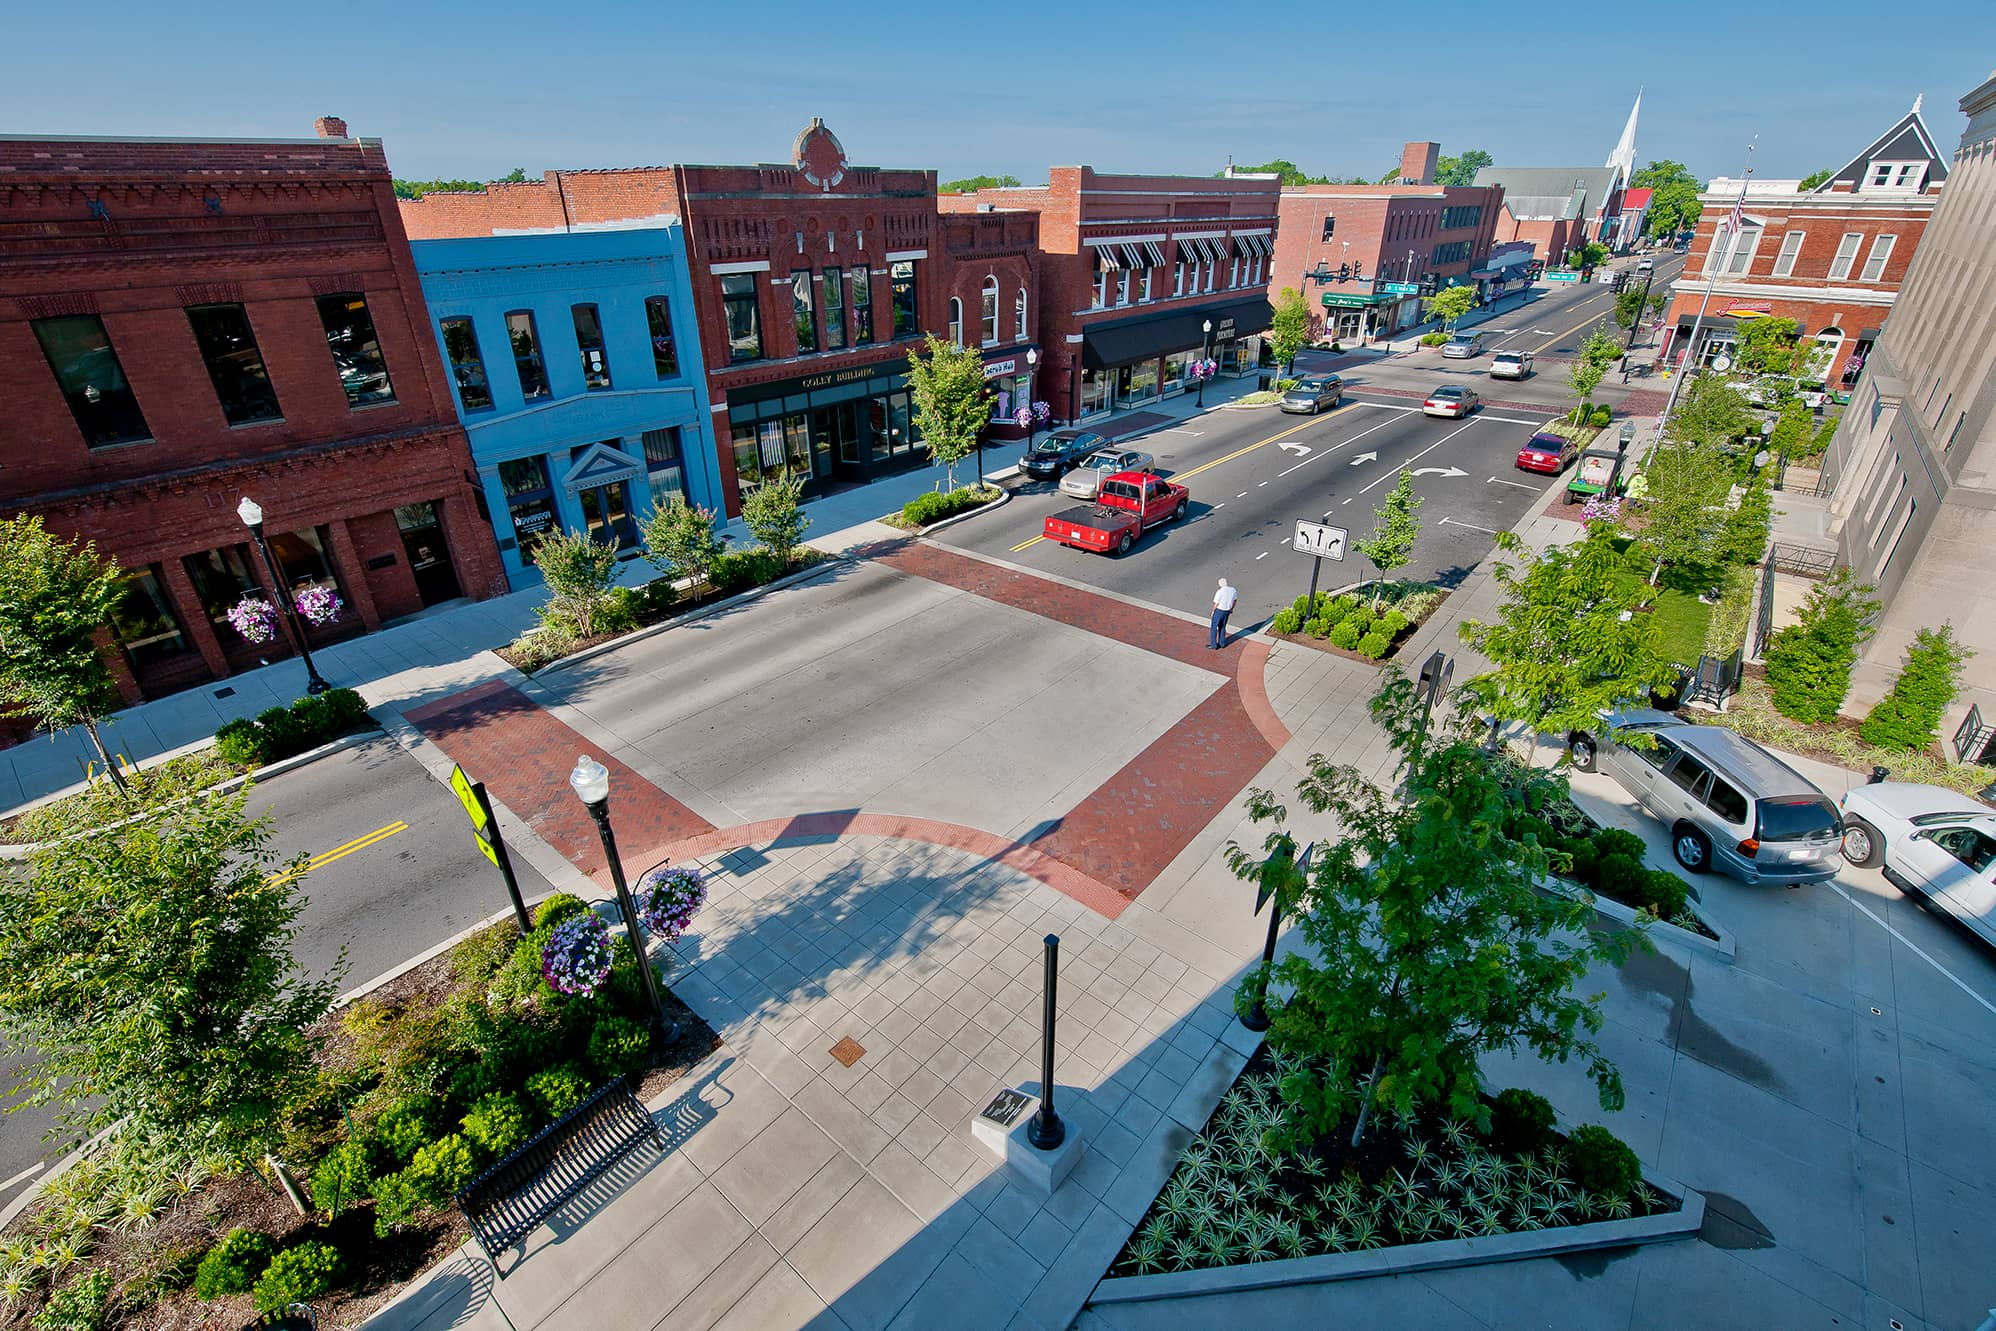 Kimley-Horn's streetscape, landscape and irrigation system design capabilities can create a strong sense of place in your community.